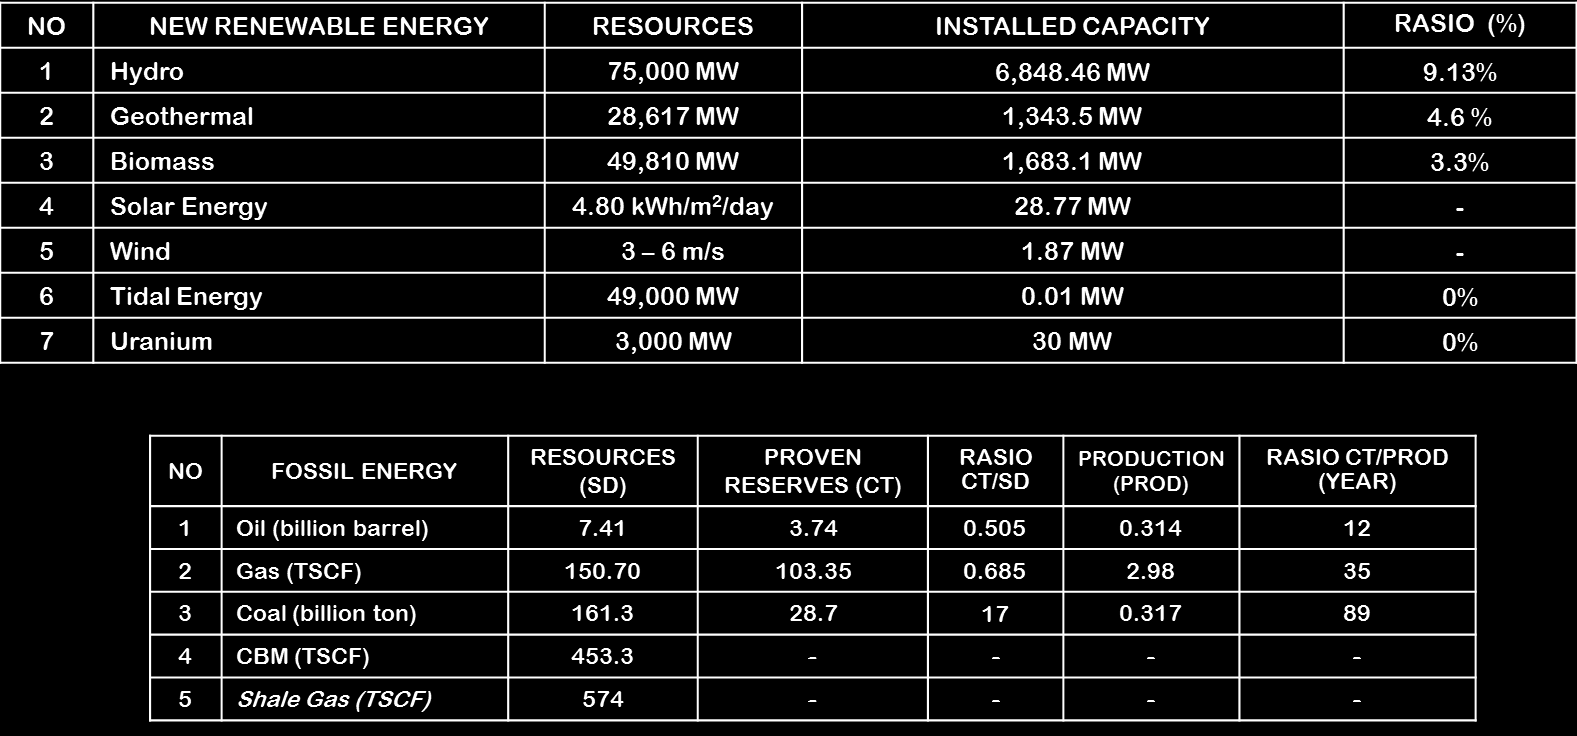 Table 1: Energy potentials in Indonesia (MEMR, 2013) Furthermore, the utilization of renewable energy sources to generate electricity remains very low (Table 1), i.e. hydropower (9.